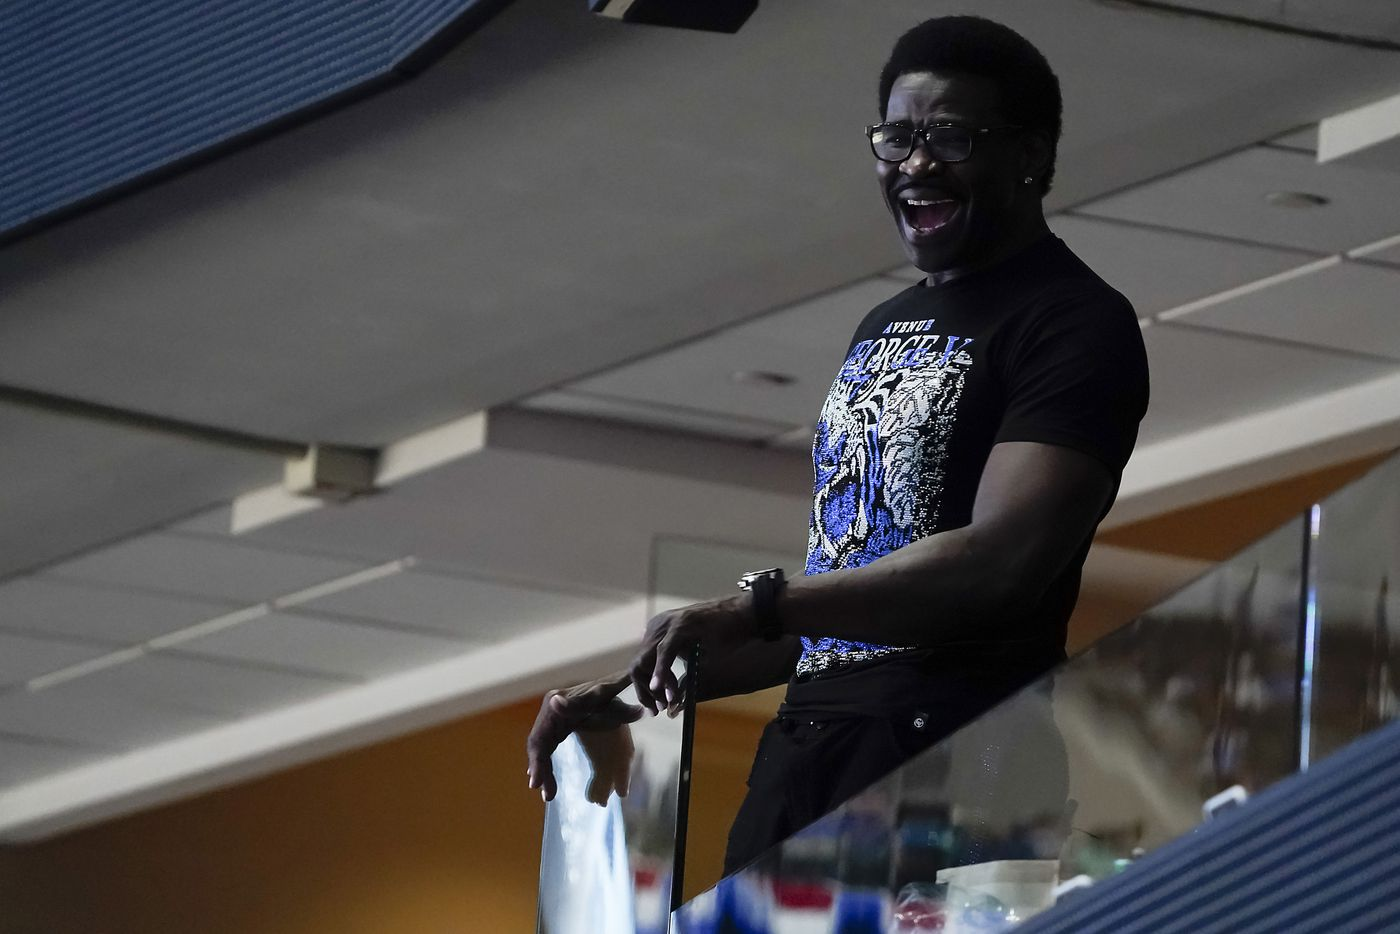 Michael Irvin watches the Dallas Mavericks face the LA Clippers during the third quarter of an NBA playoff basketball game at American Airlines Center on Friday, May 28, 2021, in Dallas.